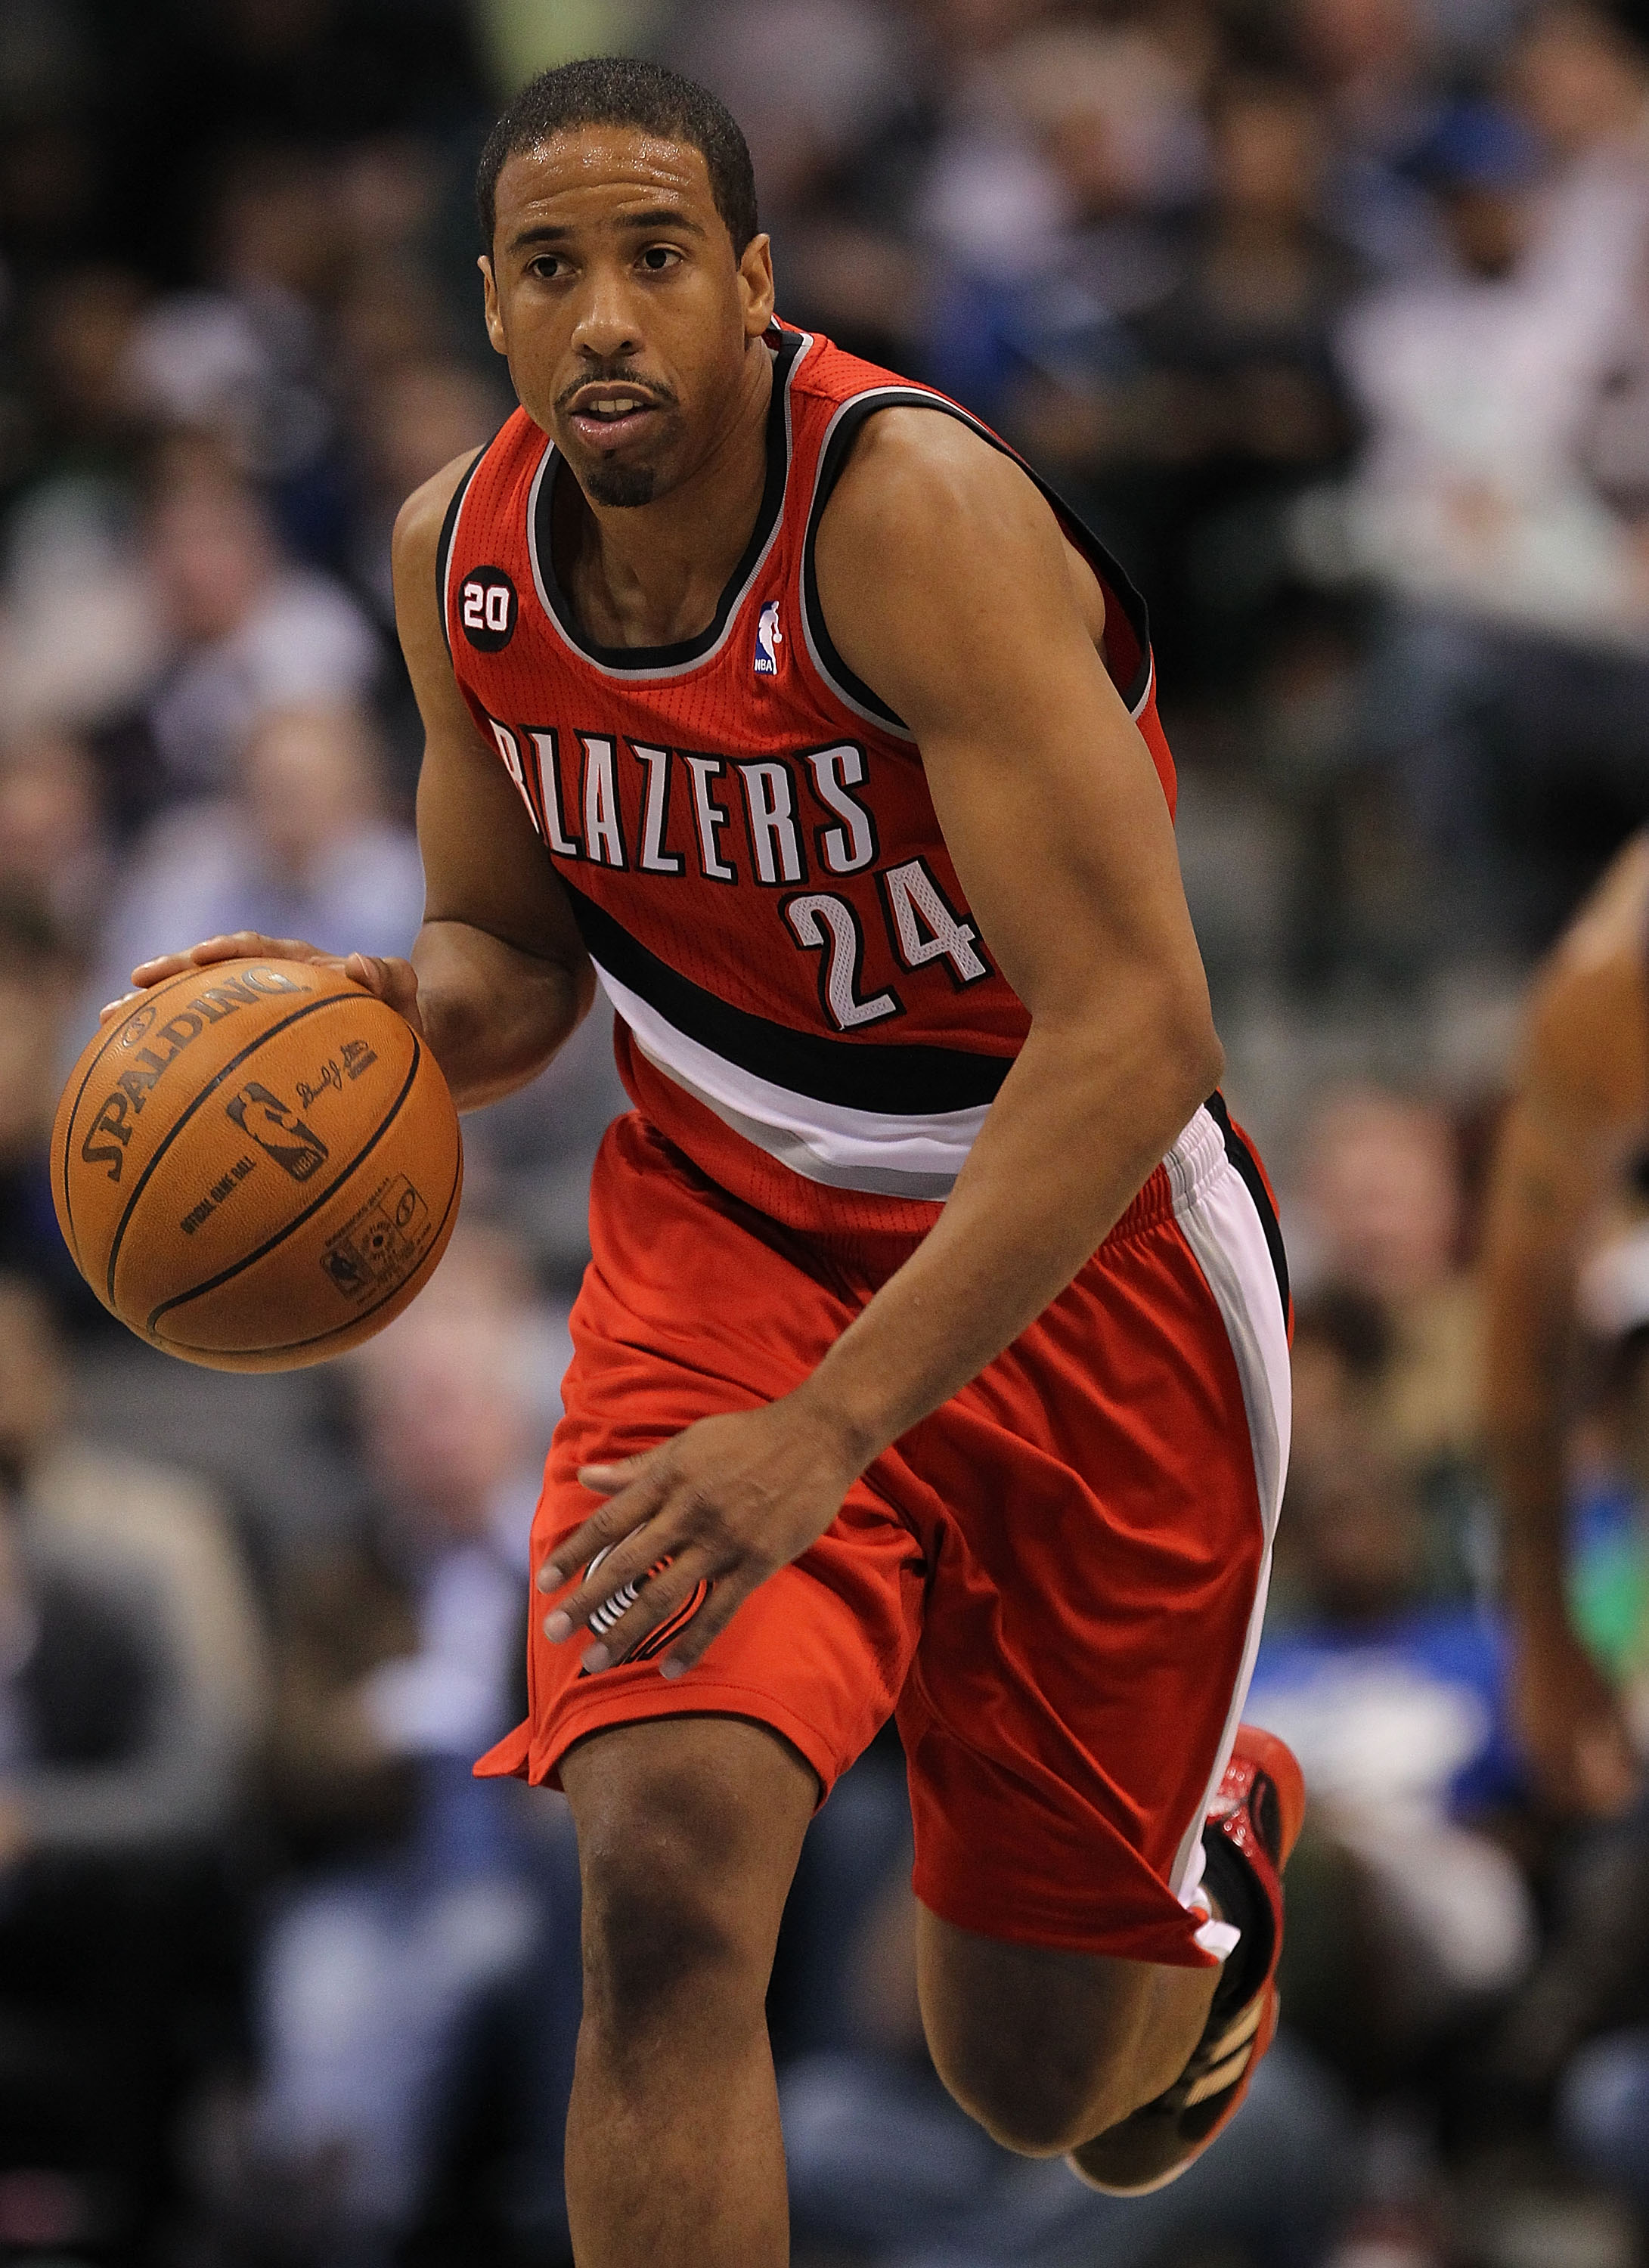 DALLAS, TX - DECEMBER 15:  Guard Andre Miller #24 of the Portland Trail Blazers at American Airlines Center on December 15, 2010 in Dallas, Texas.  NOTE TO USER: User expressly acknowledges and agrees that, by downloading and or using this photograph, Use